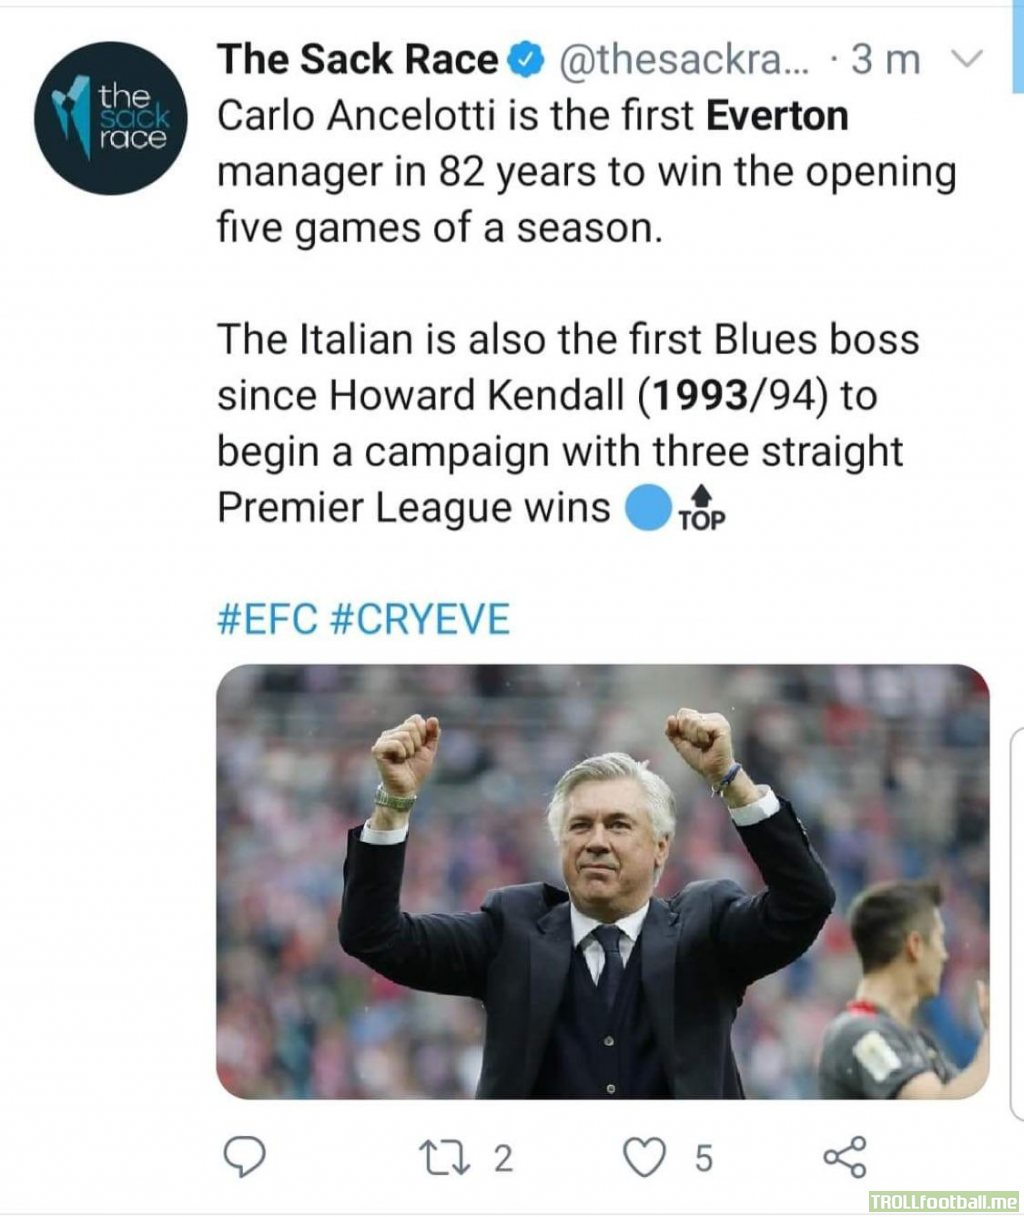 Carlo Ancelotti is the first Everton manager in 82 years to win the opening 5 games of a season. Also the first manager to win the first 3 premier league games for Everton since 1993